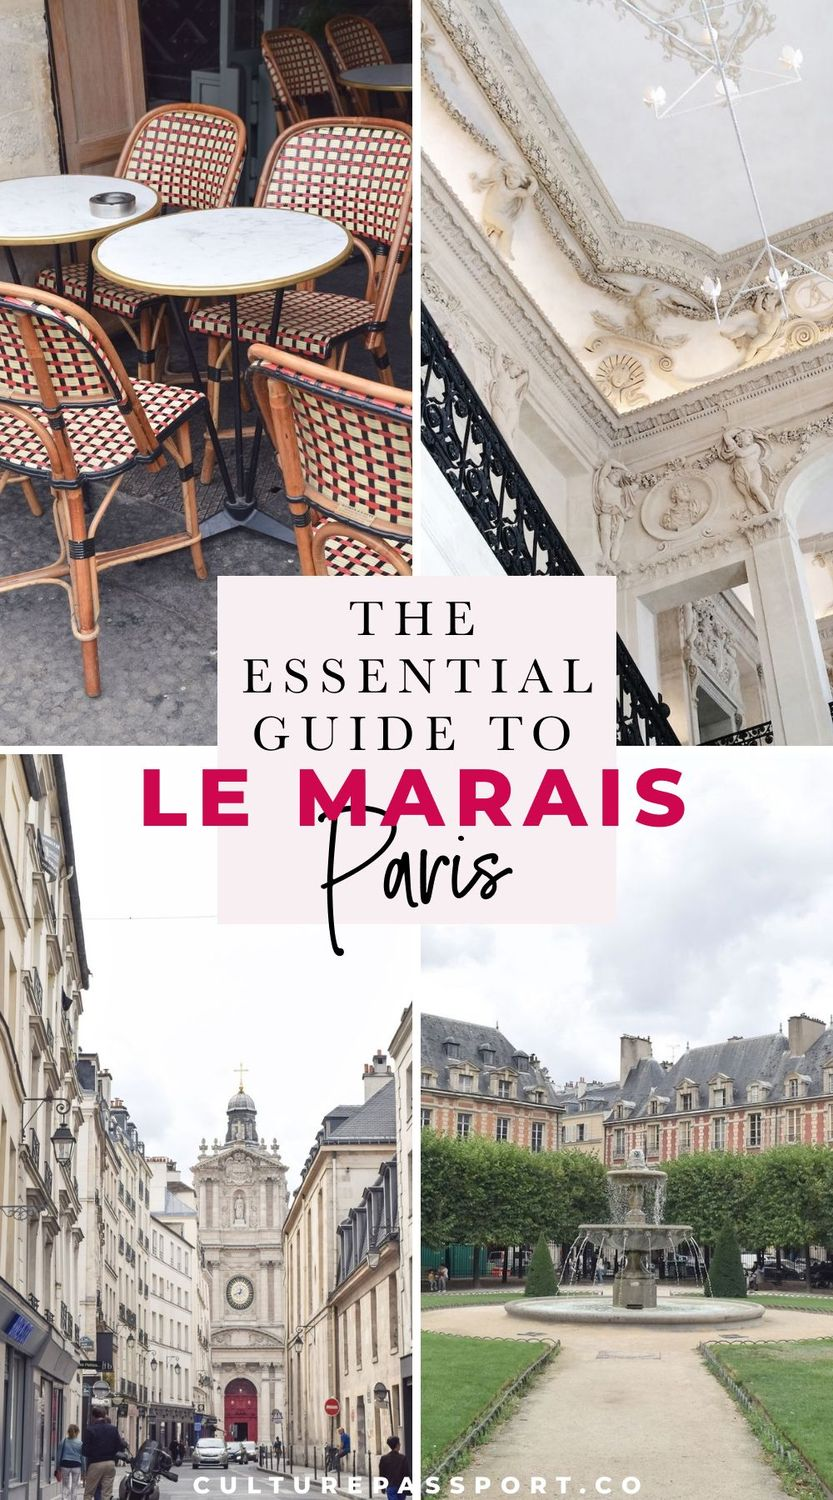 The Essential Guide to Le Marais